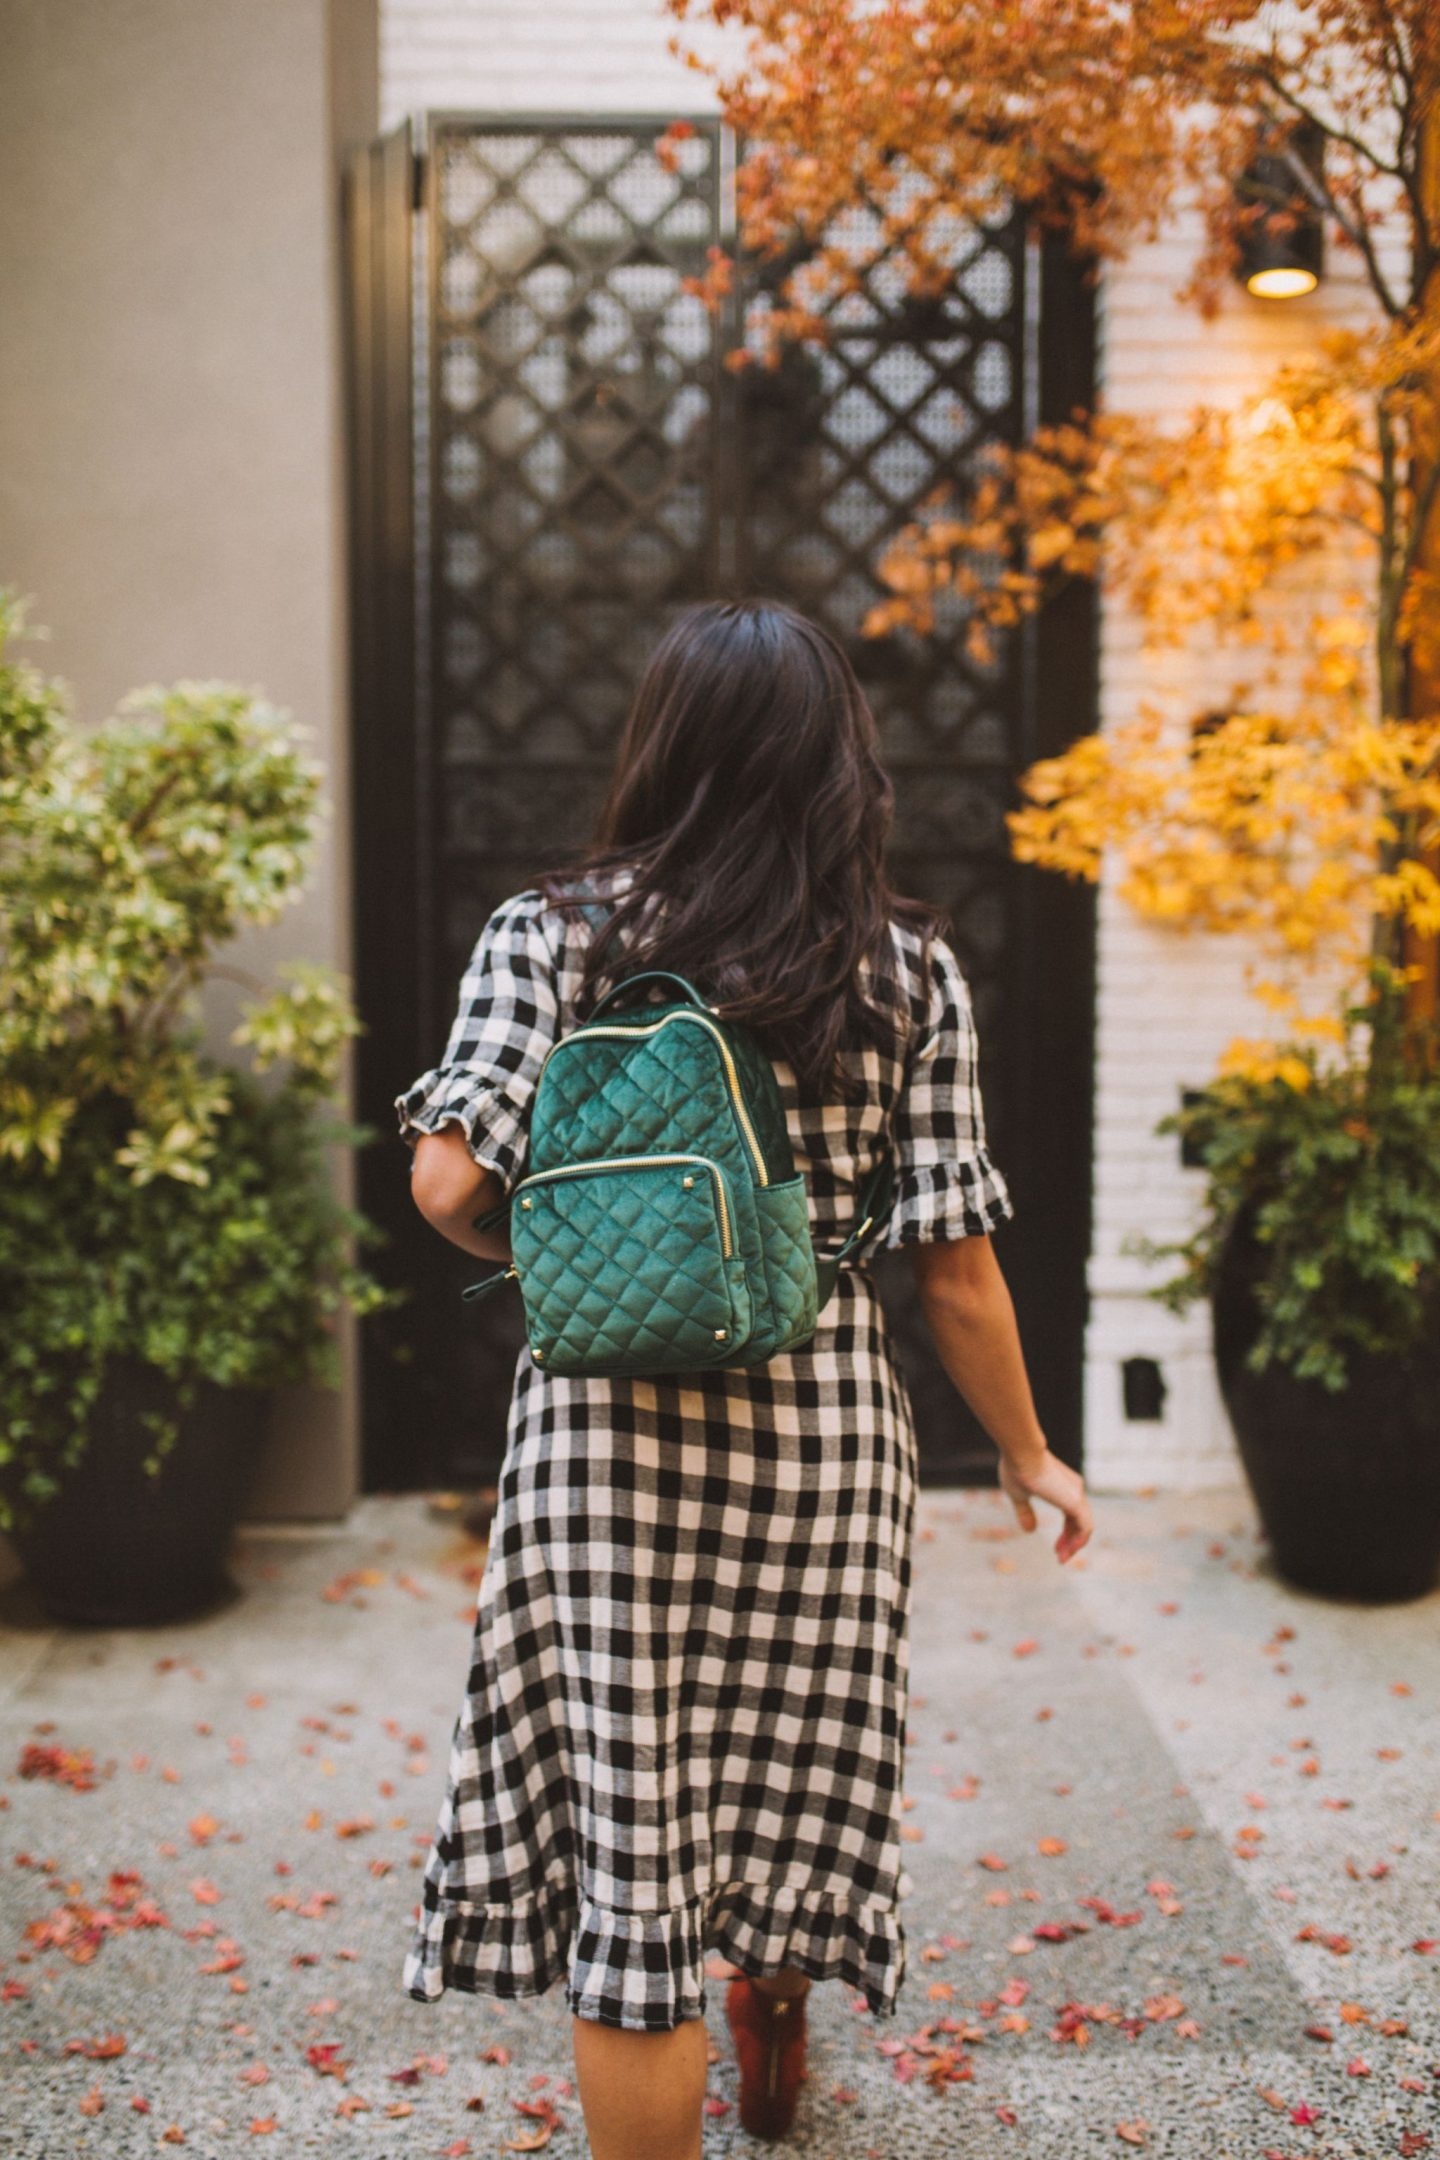 BGS-2560 Emerald Green Classic Backpack - MMS Brands - Seattle Blogger - Thankful Thanksgiving